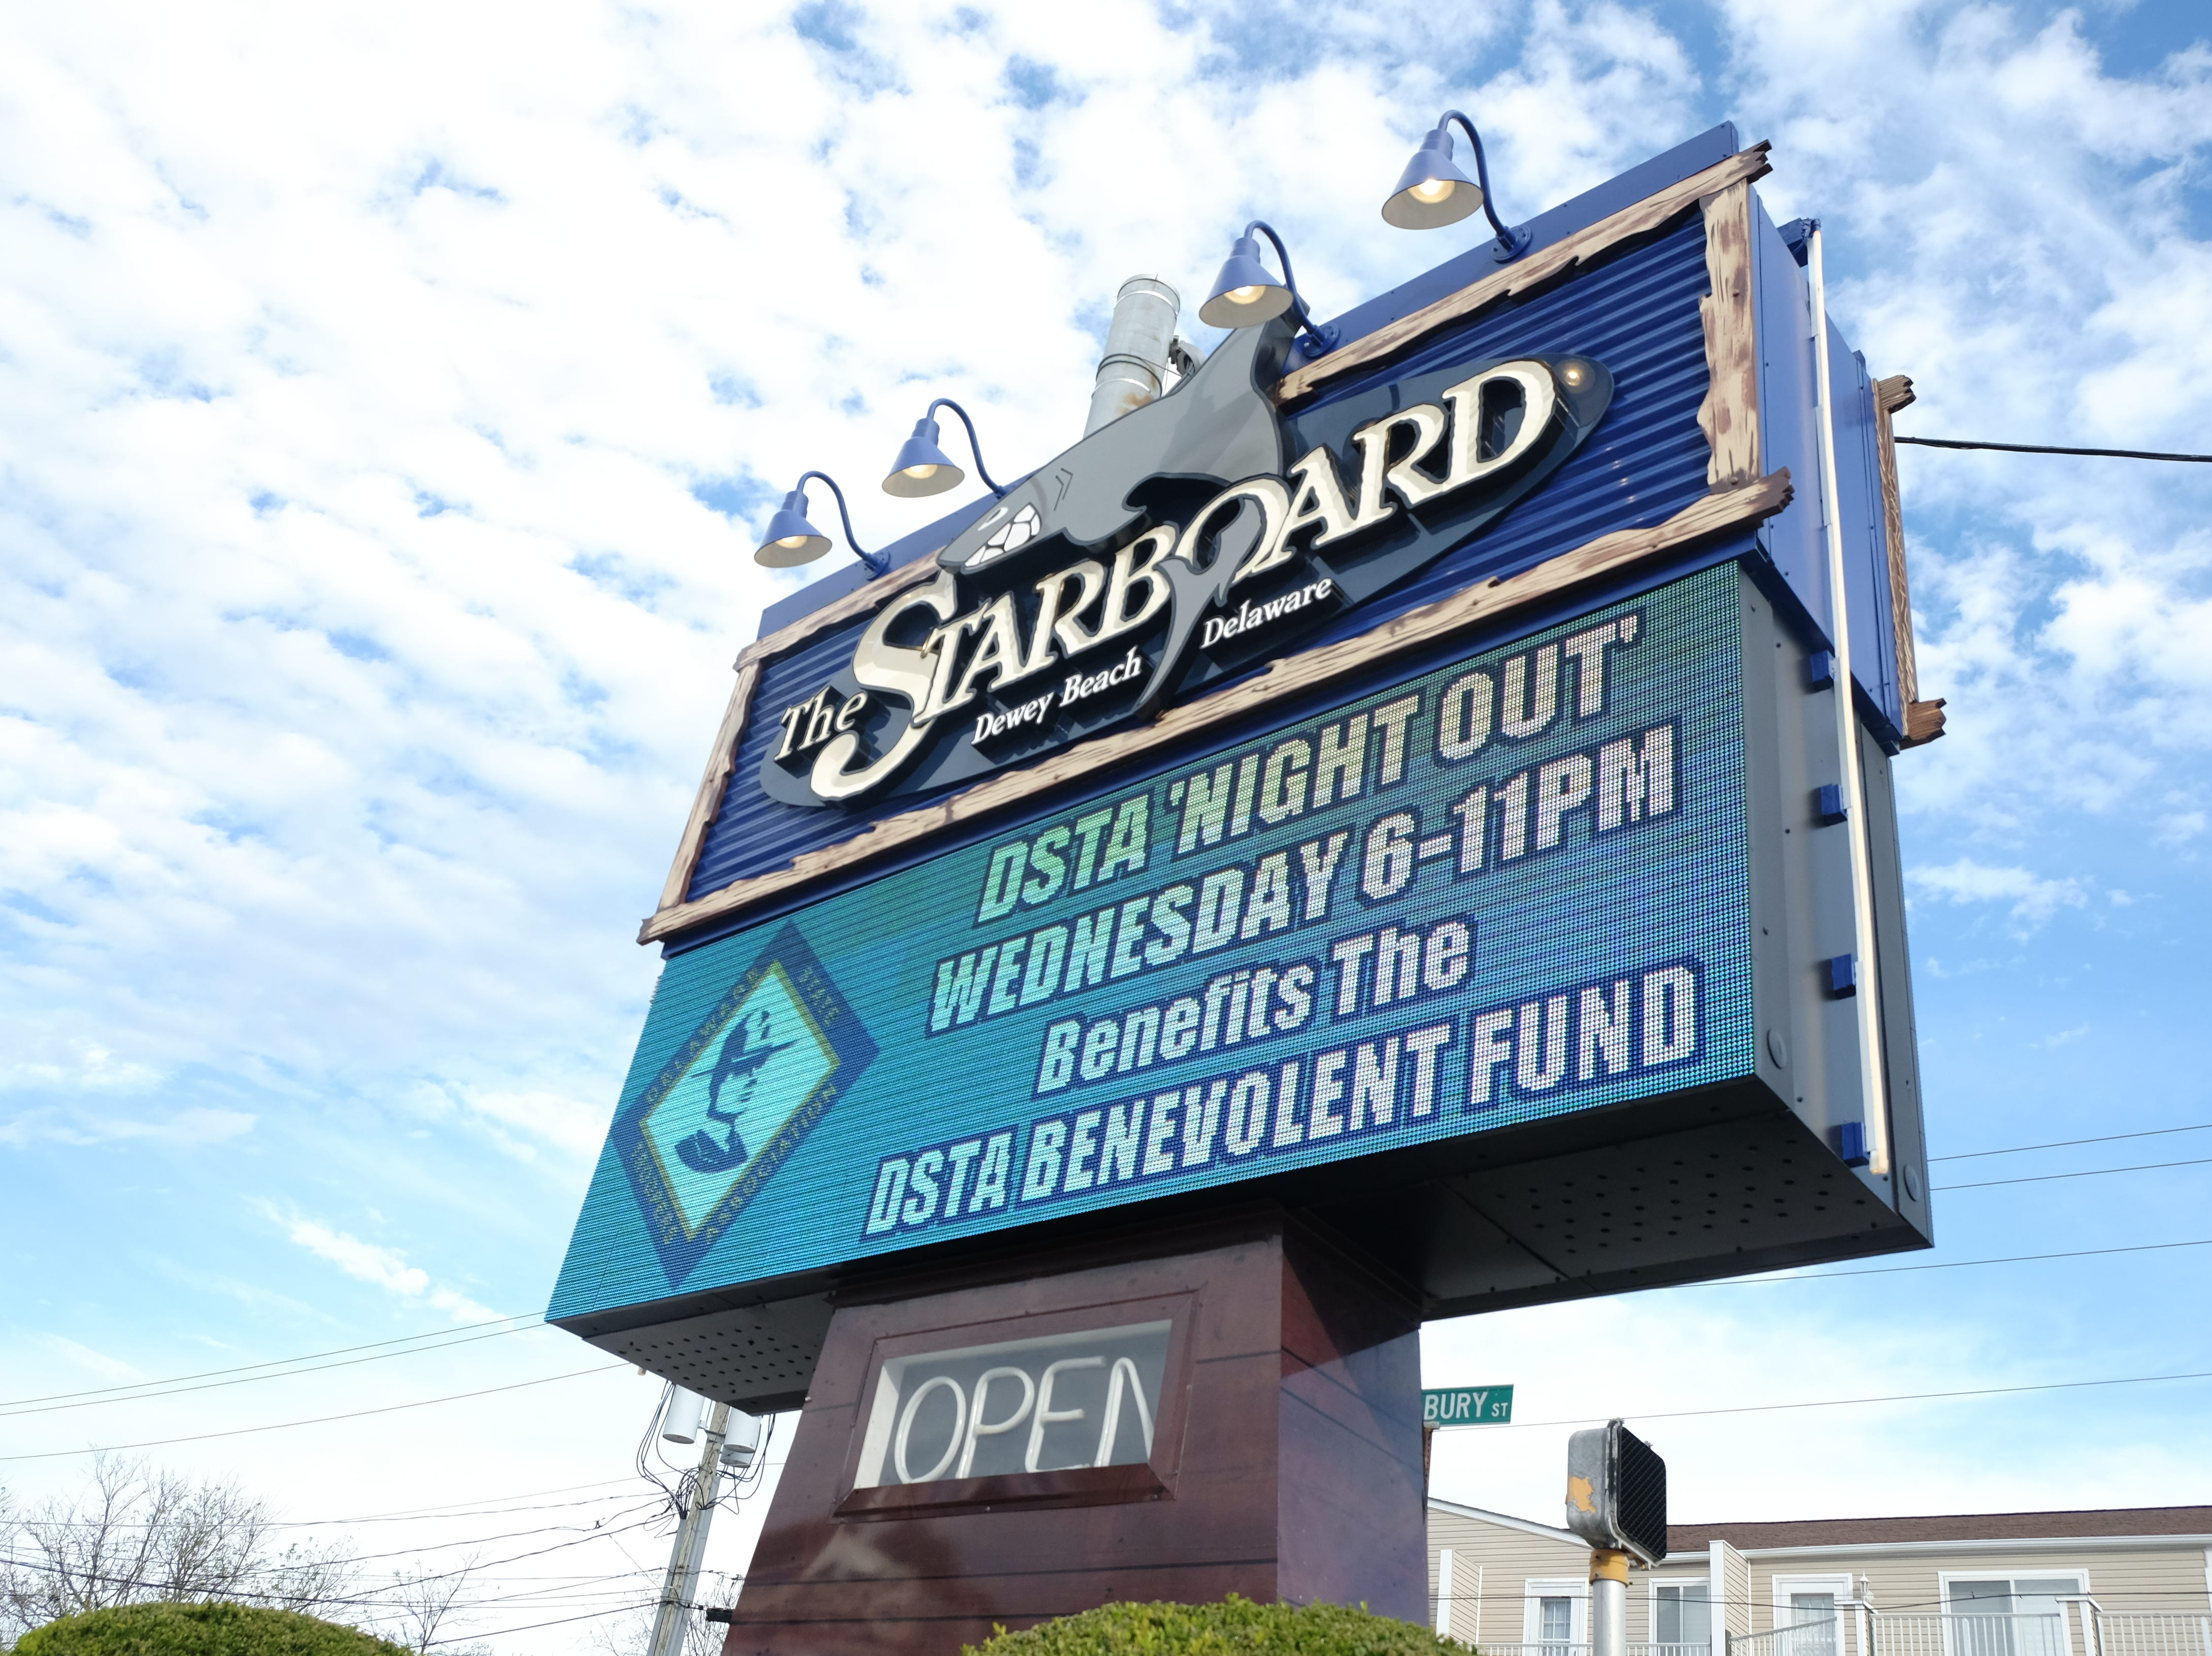 The Starboard in Dewey Beach on Tuesday, Oct. 16.